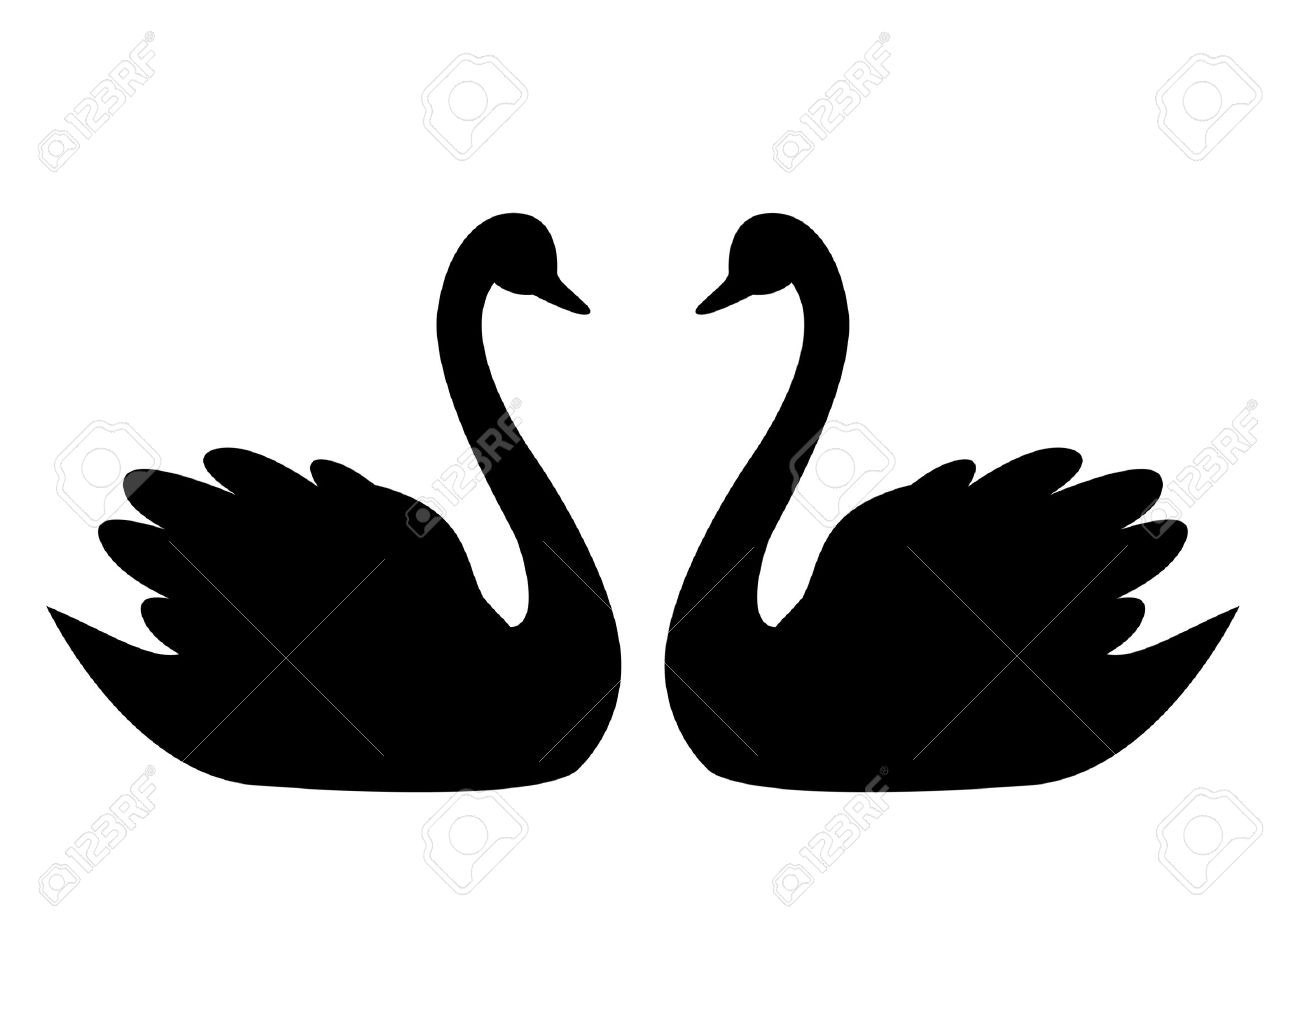 7 735 swan stock vector illustration and royalty free swan clipart rh 123rf com swan clipart pictures swan clip art images